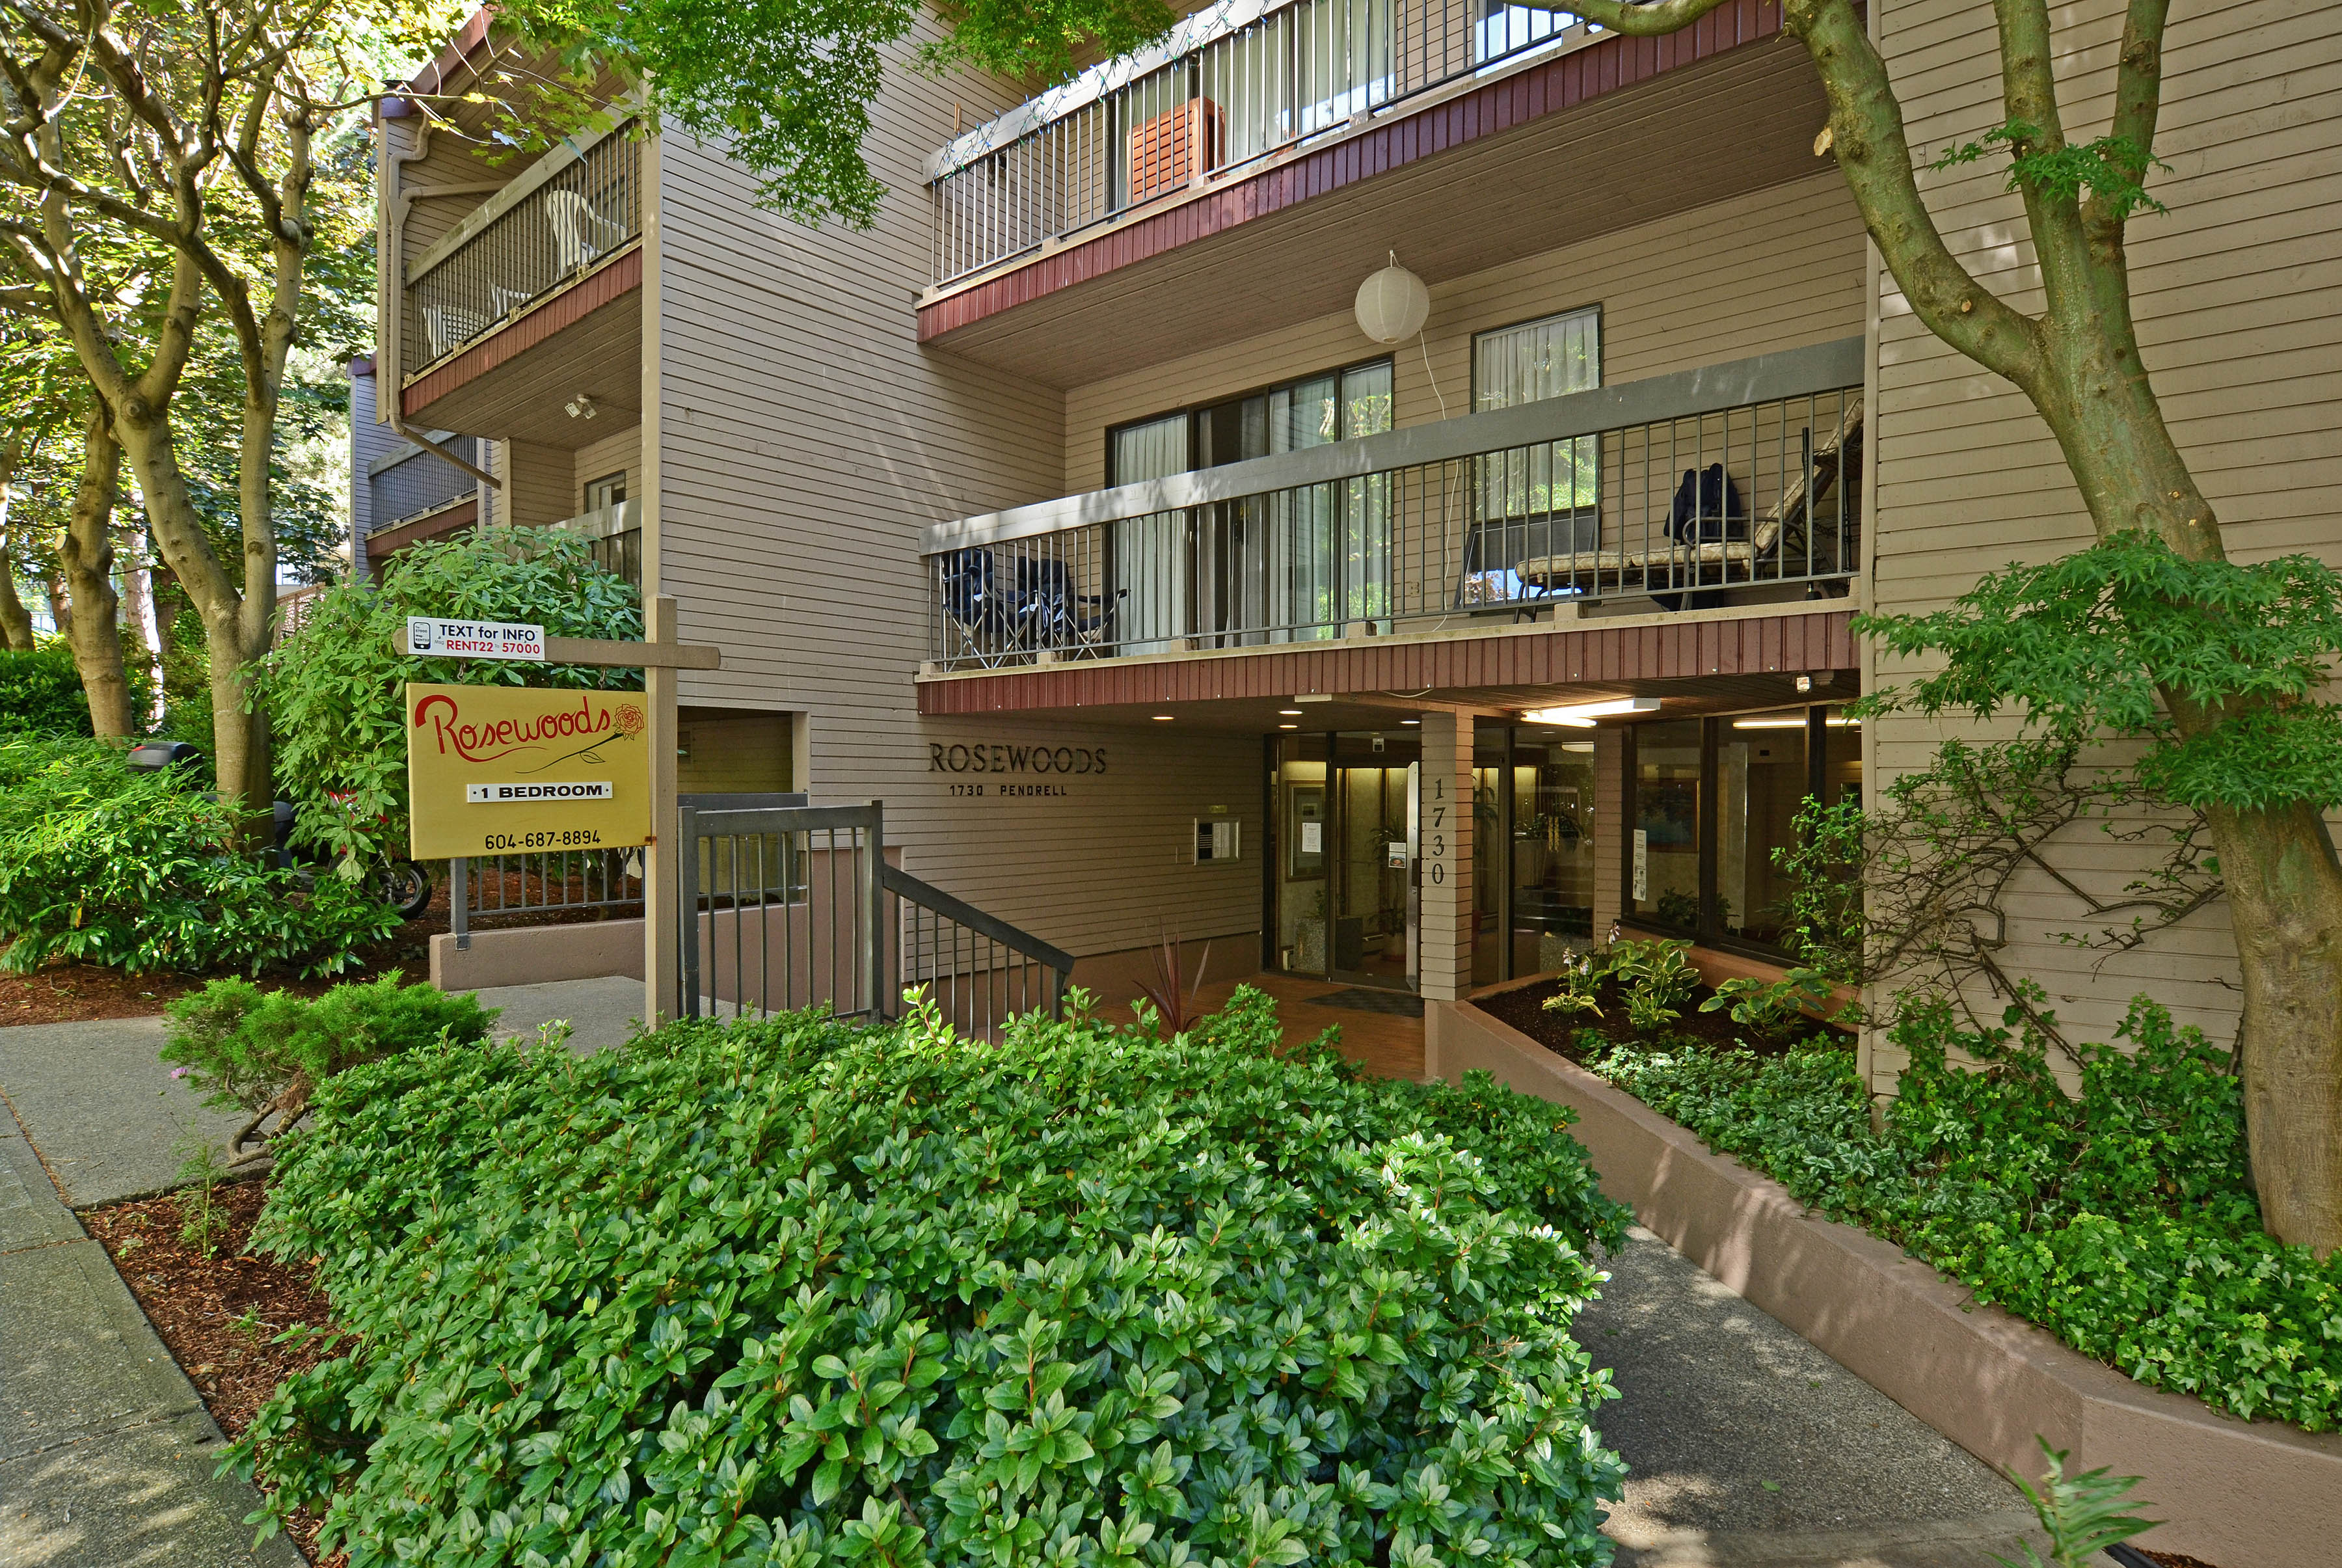 1730 Pendrell St, Vancouver, BC - $2,600